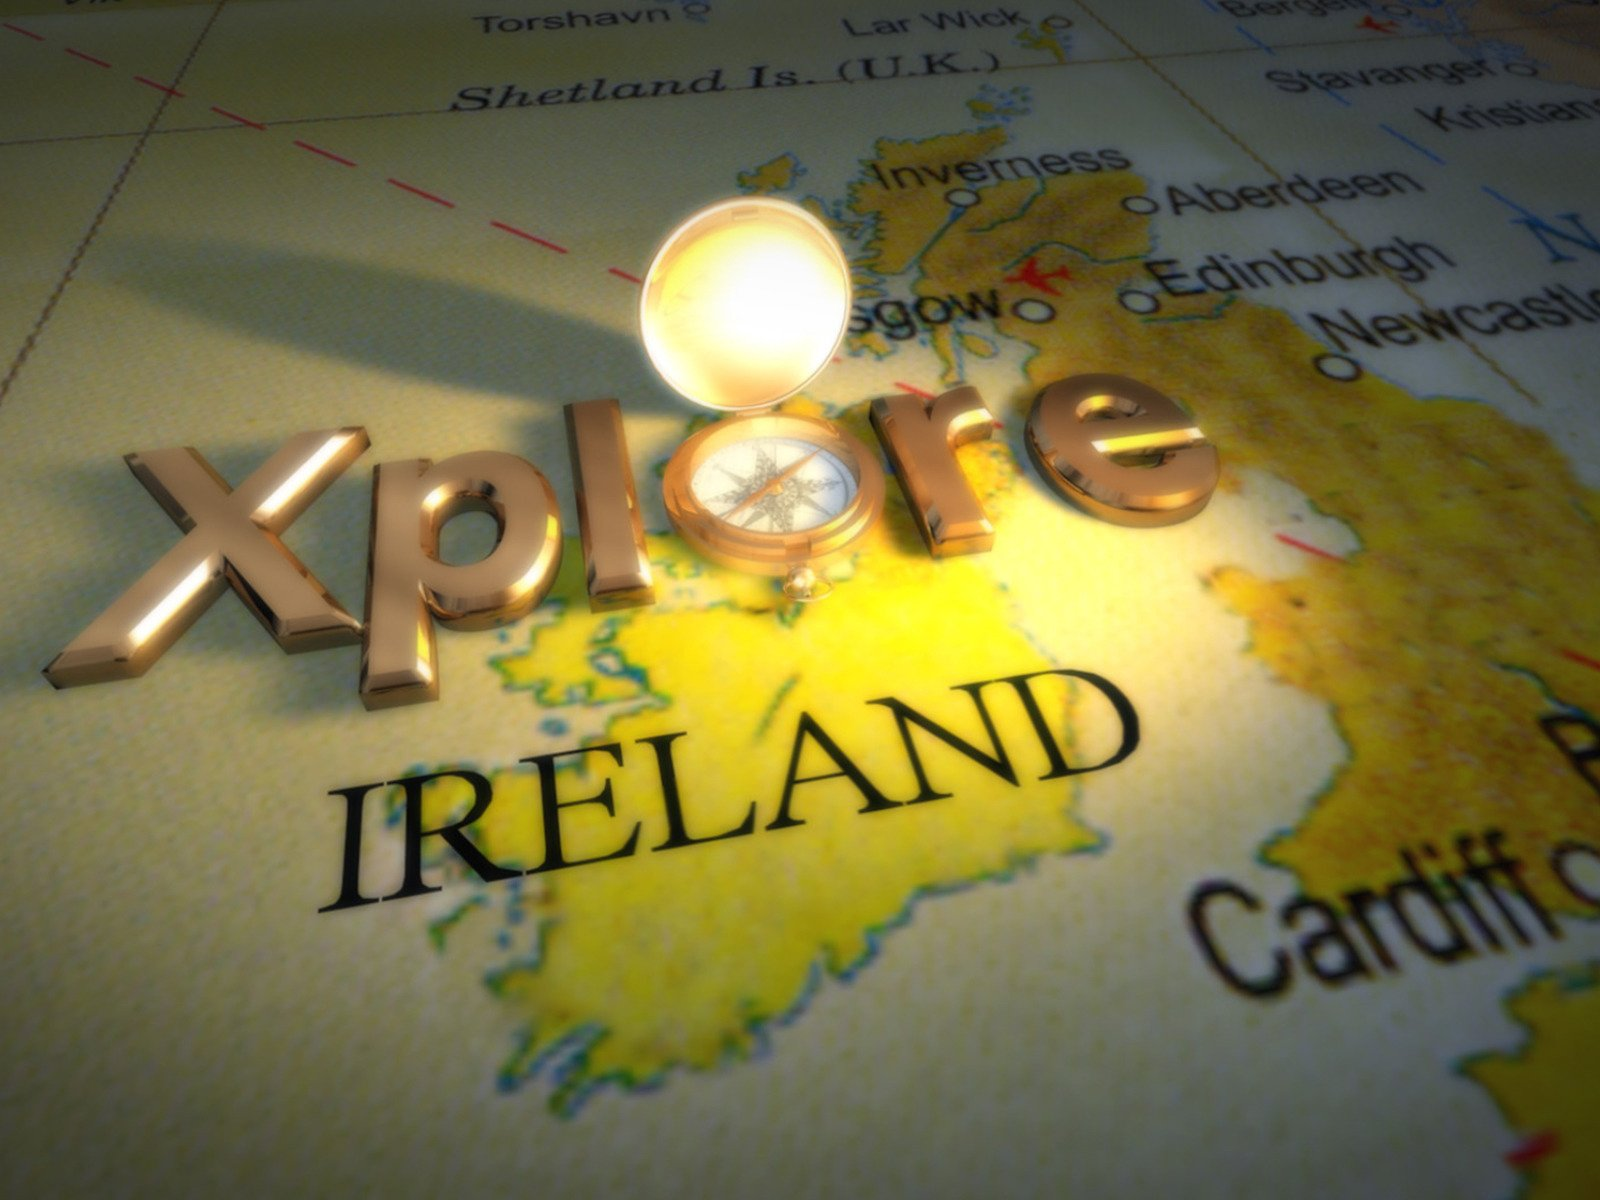 Xplore Ireland - Season 1